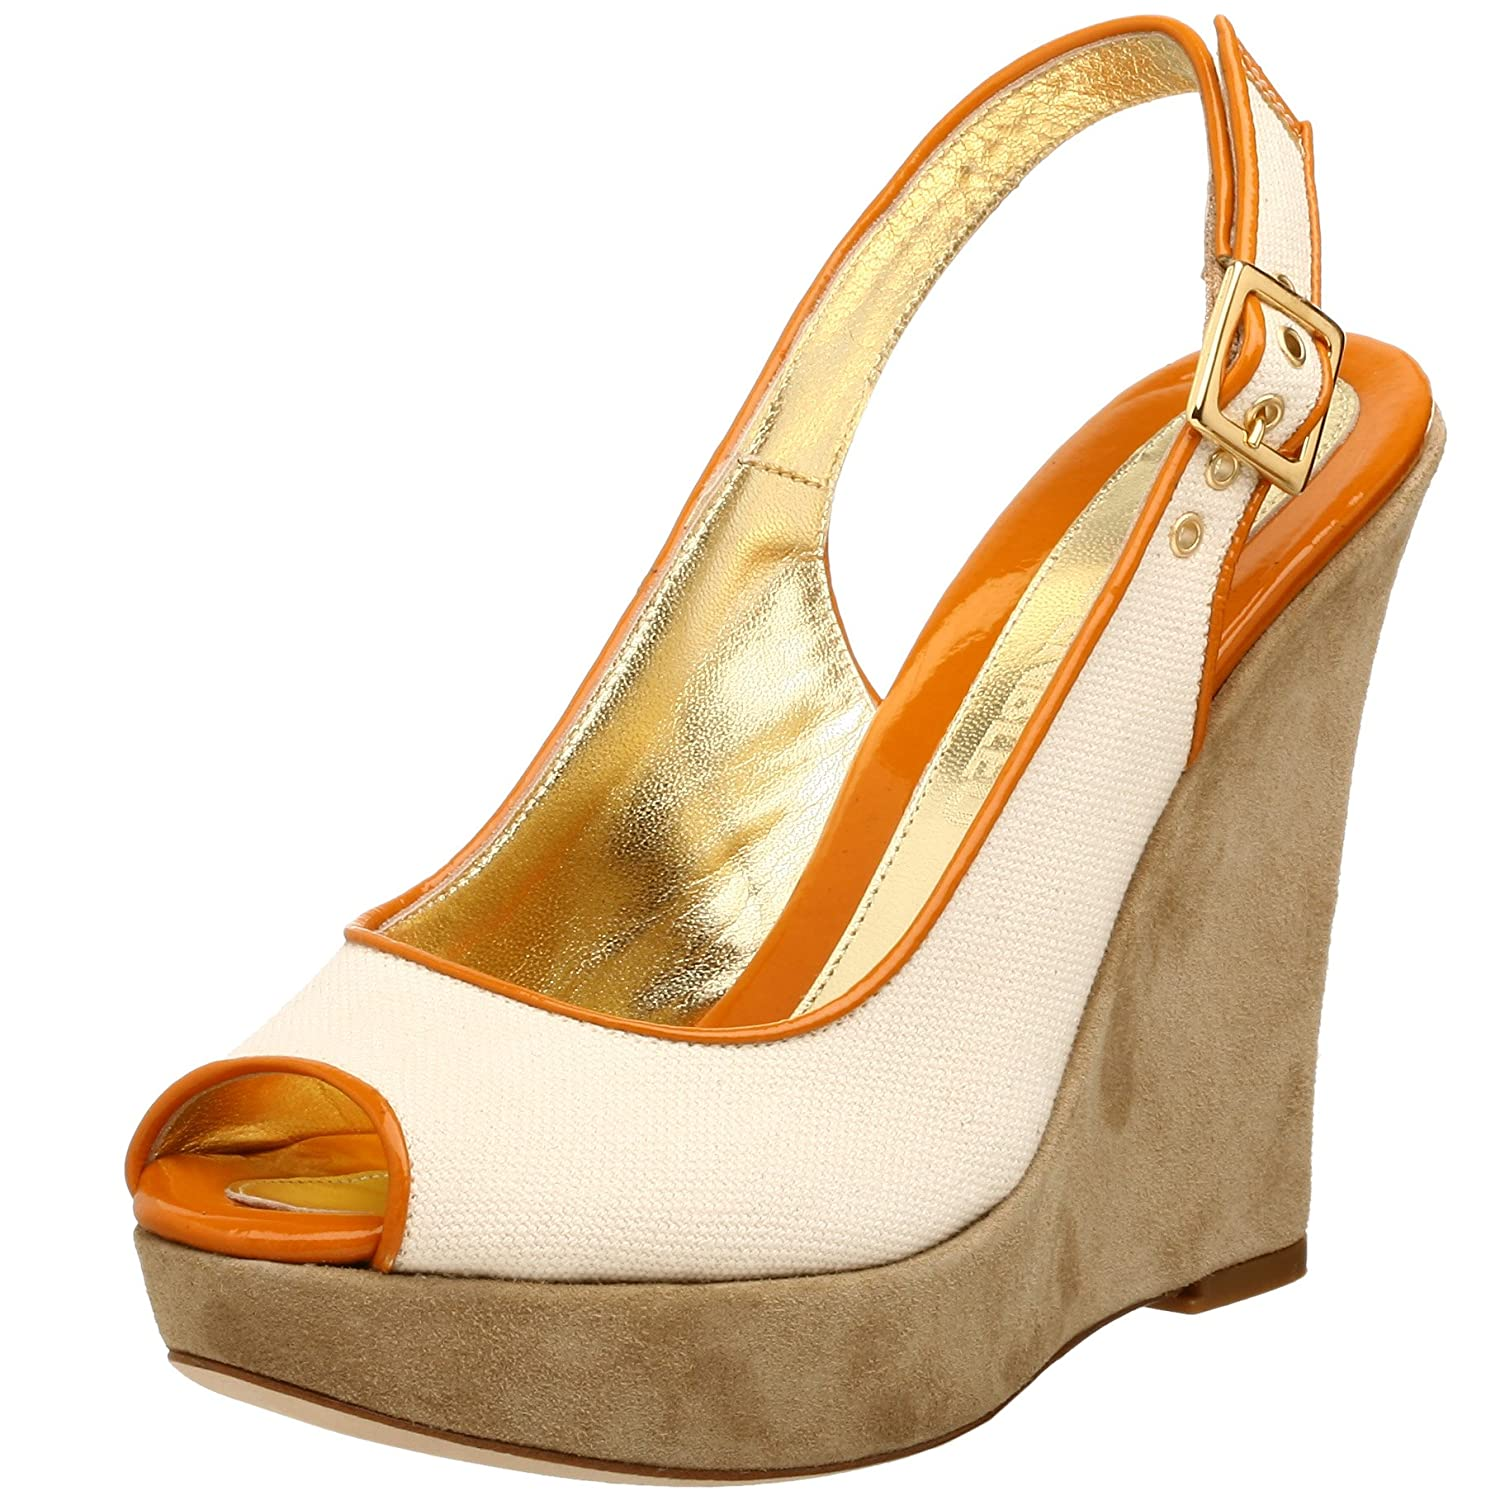 Endless.com: Goldenbleu Women's Sydney Wedge Sandal: Categories - Free Overnight Shipping & Return Shipping from endless.com